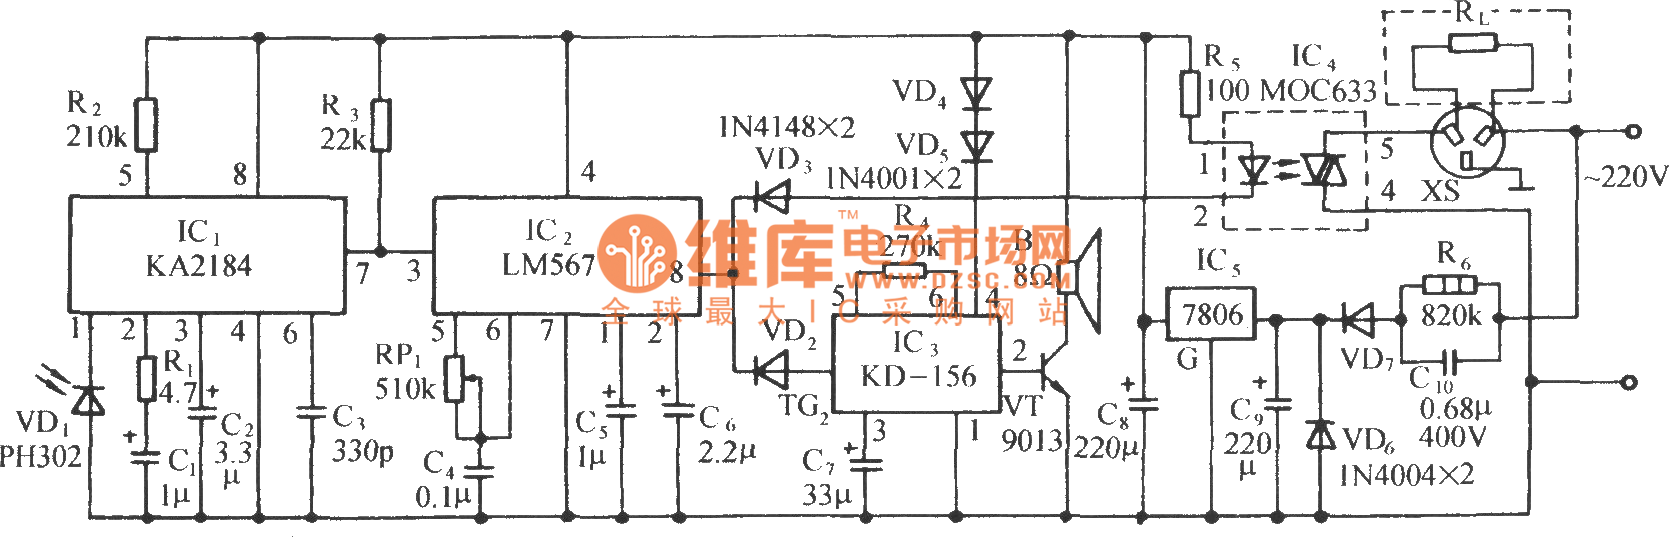 Household Appliances Infrared Remote Control Socket Circuit Diagram Seekiccom Circuitdiagram Automotivecircuit Soundgeneratorcircuit